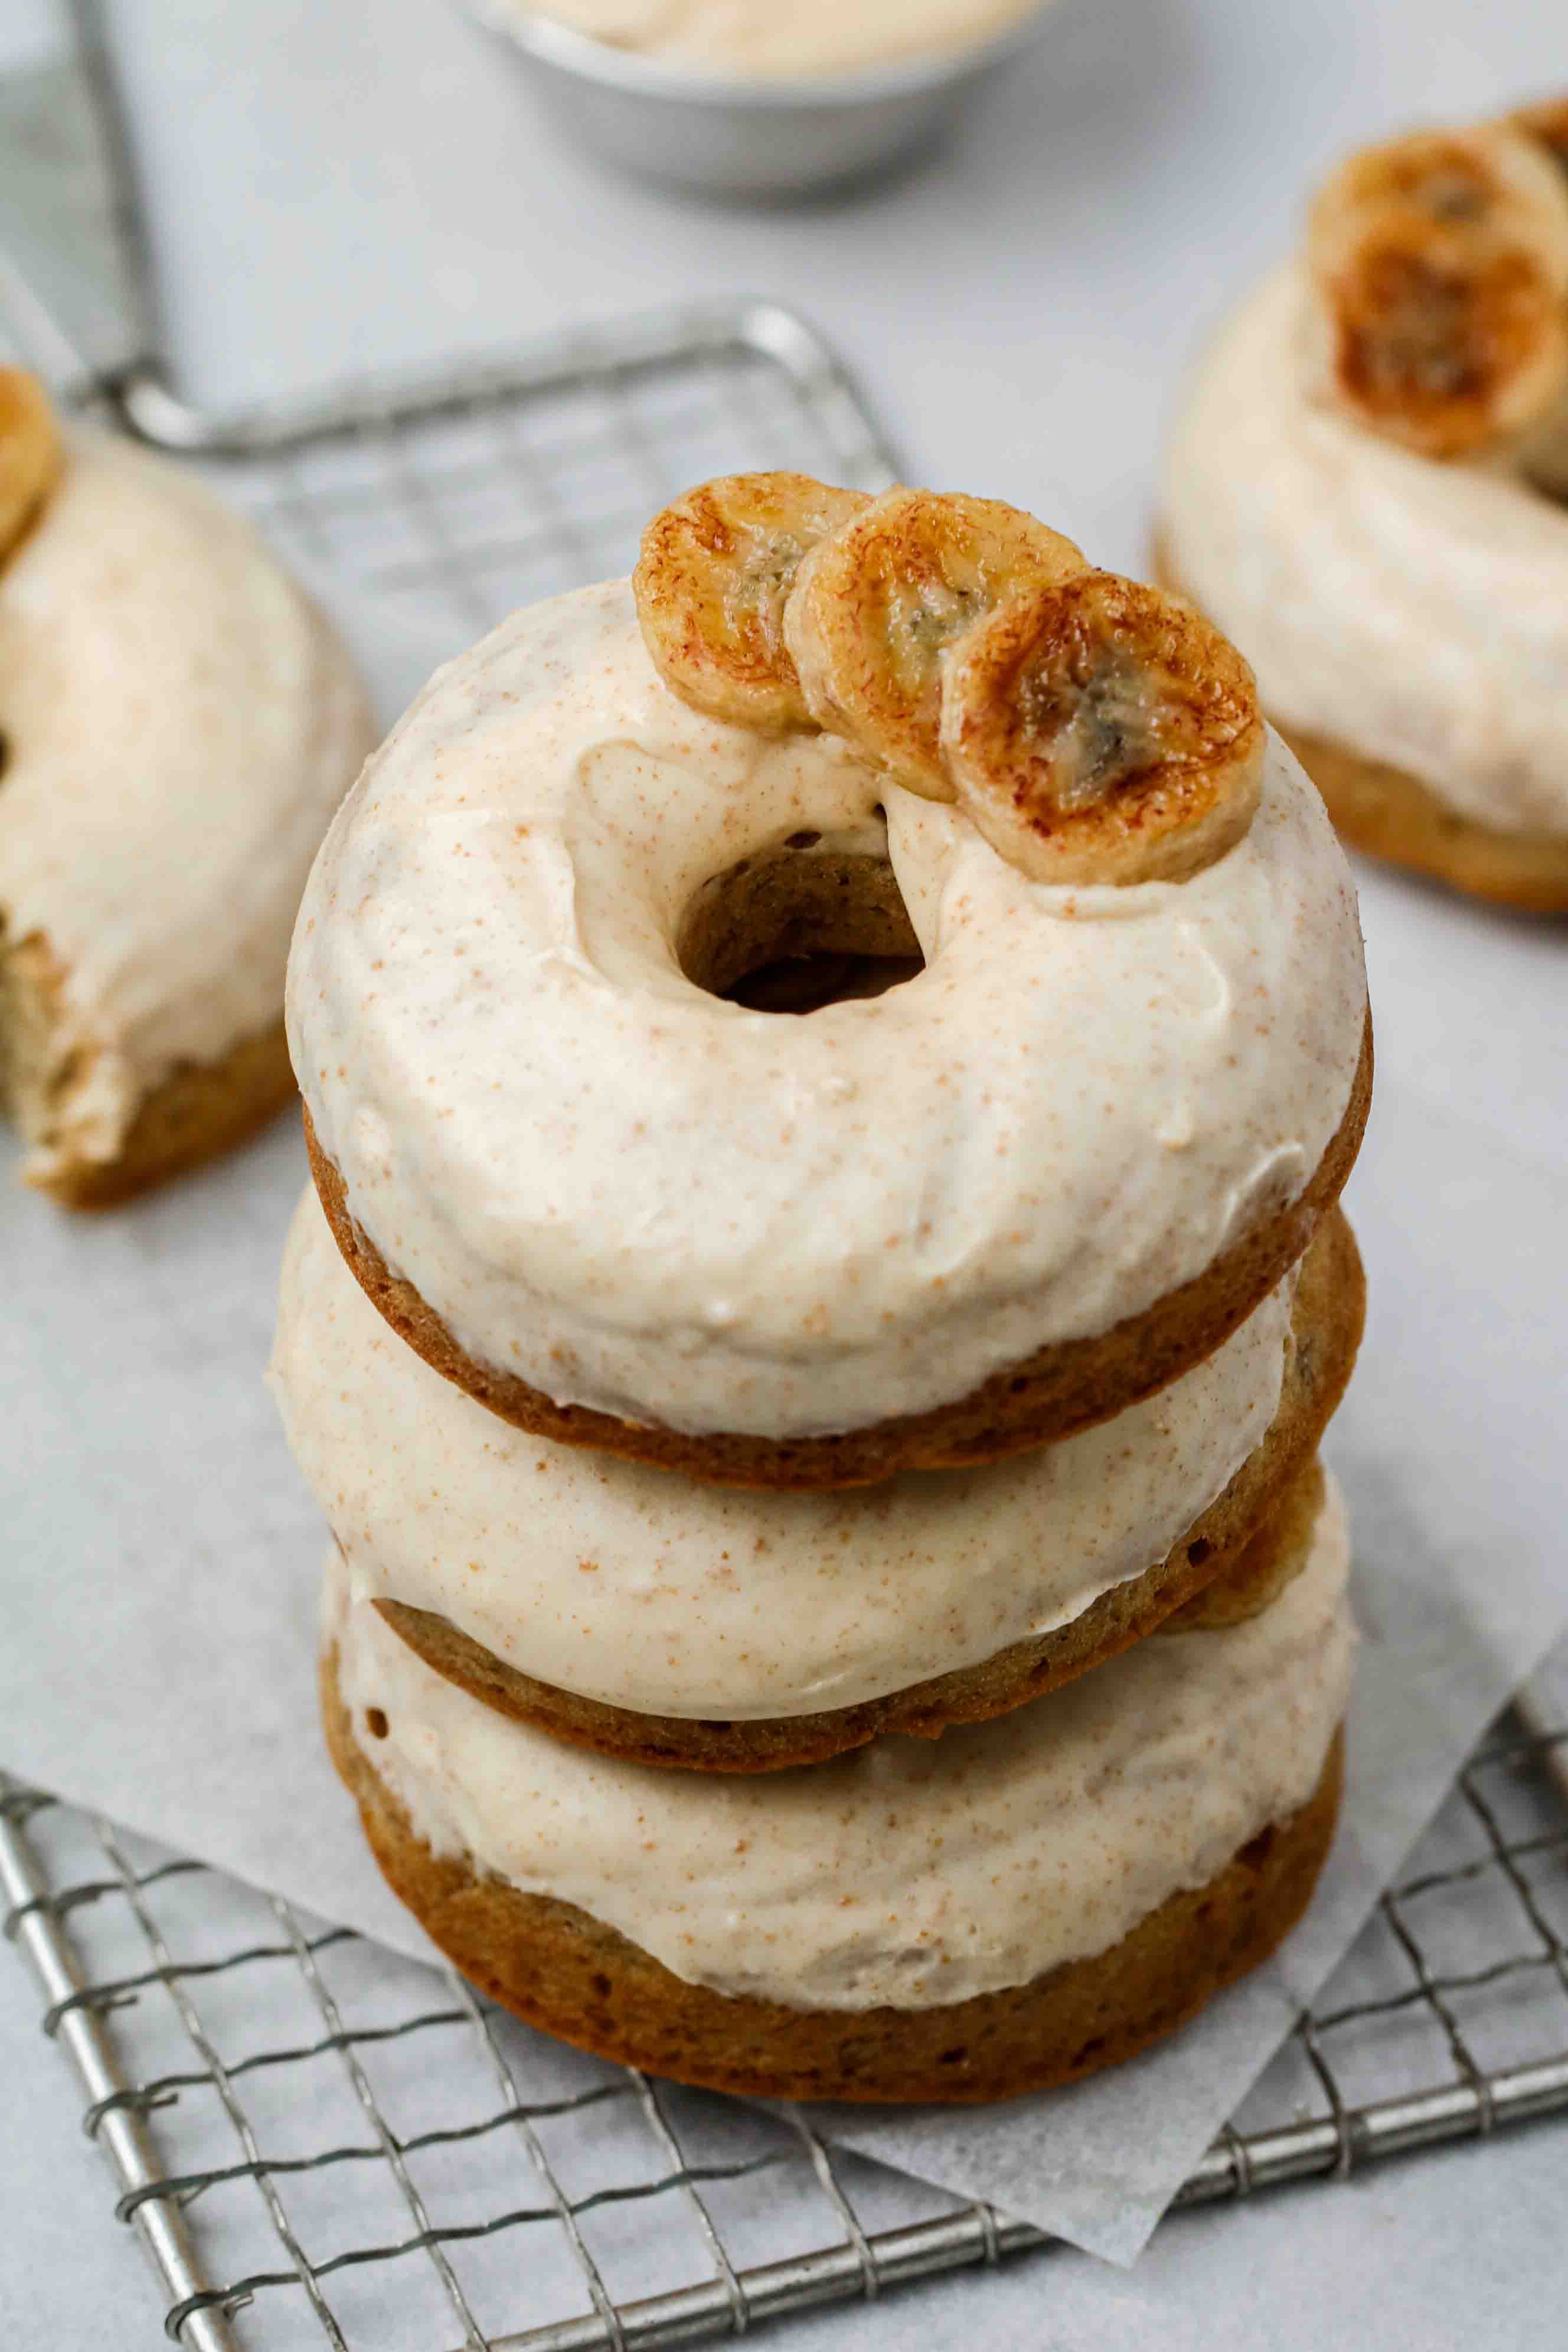 Stack of banana donuts with brown butter glaze